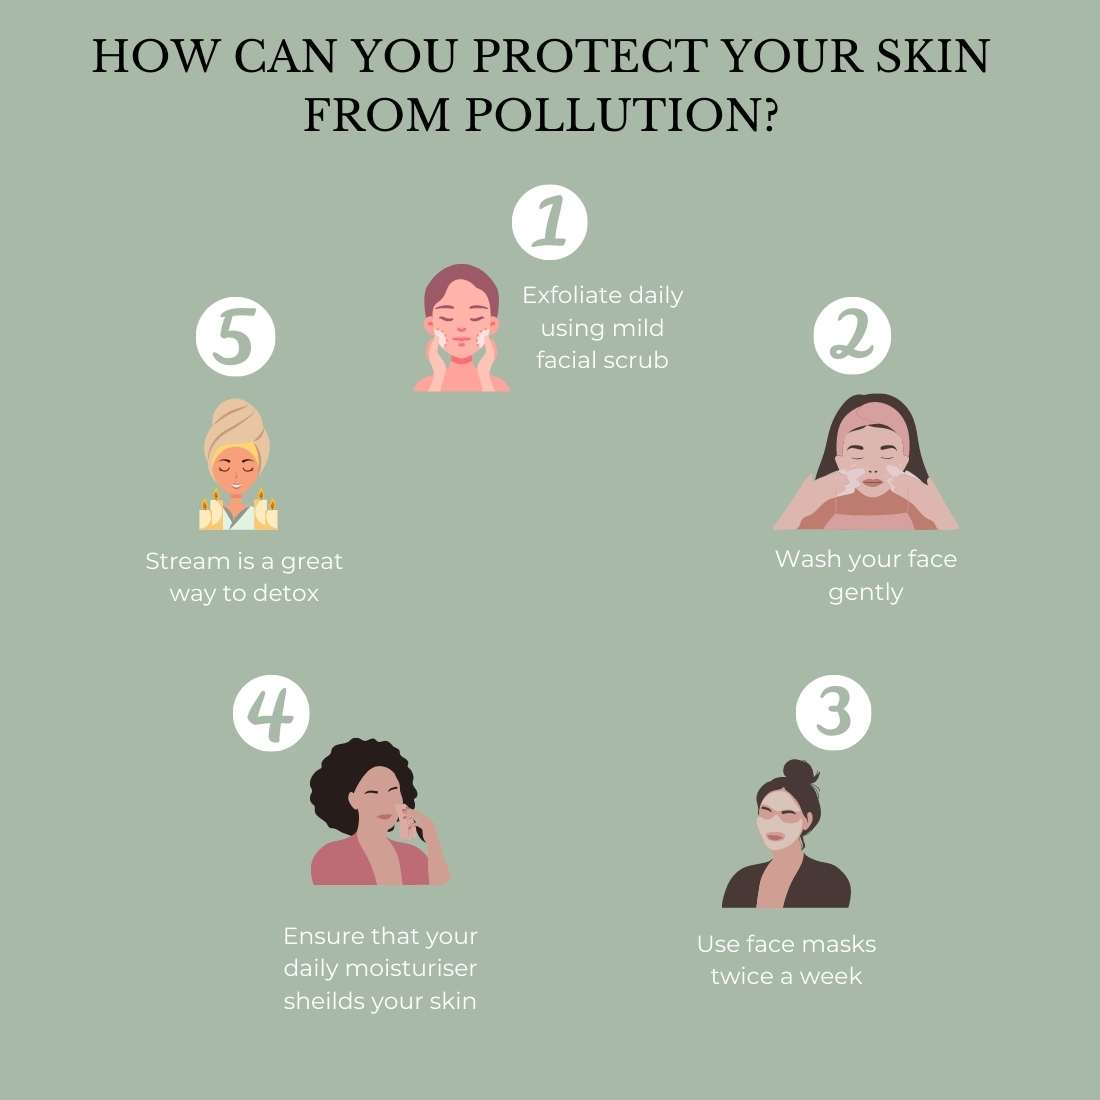 This is an image showing skin care routine to combat effects of pollution on your skin.